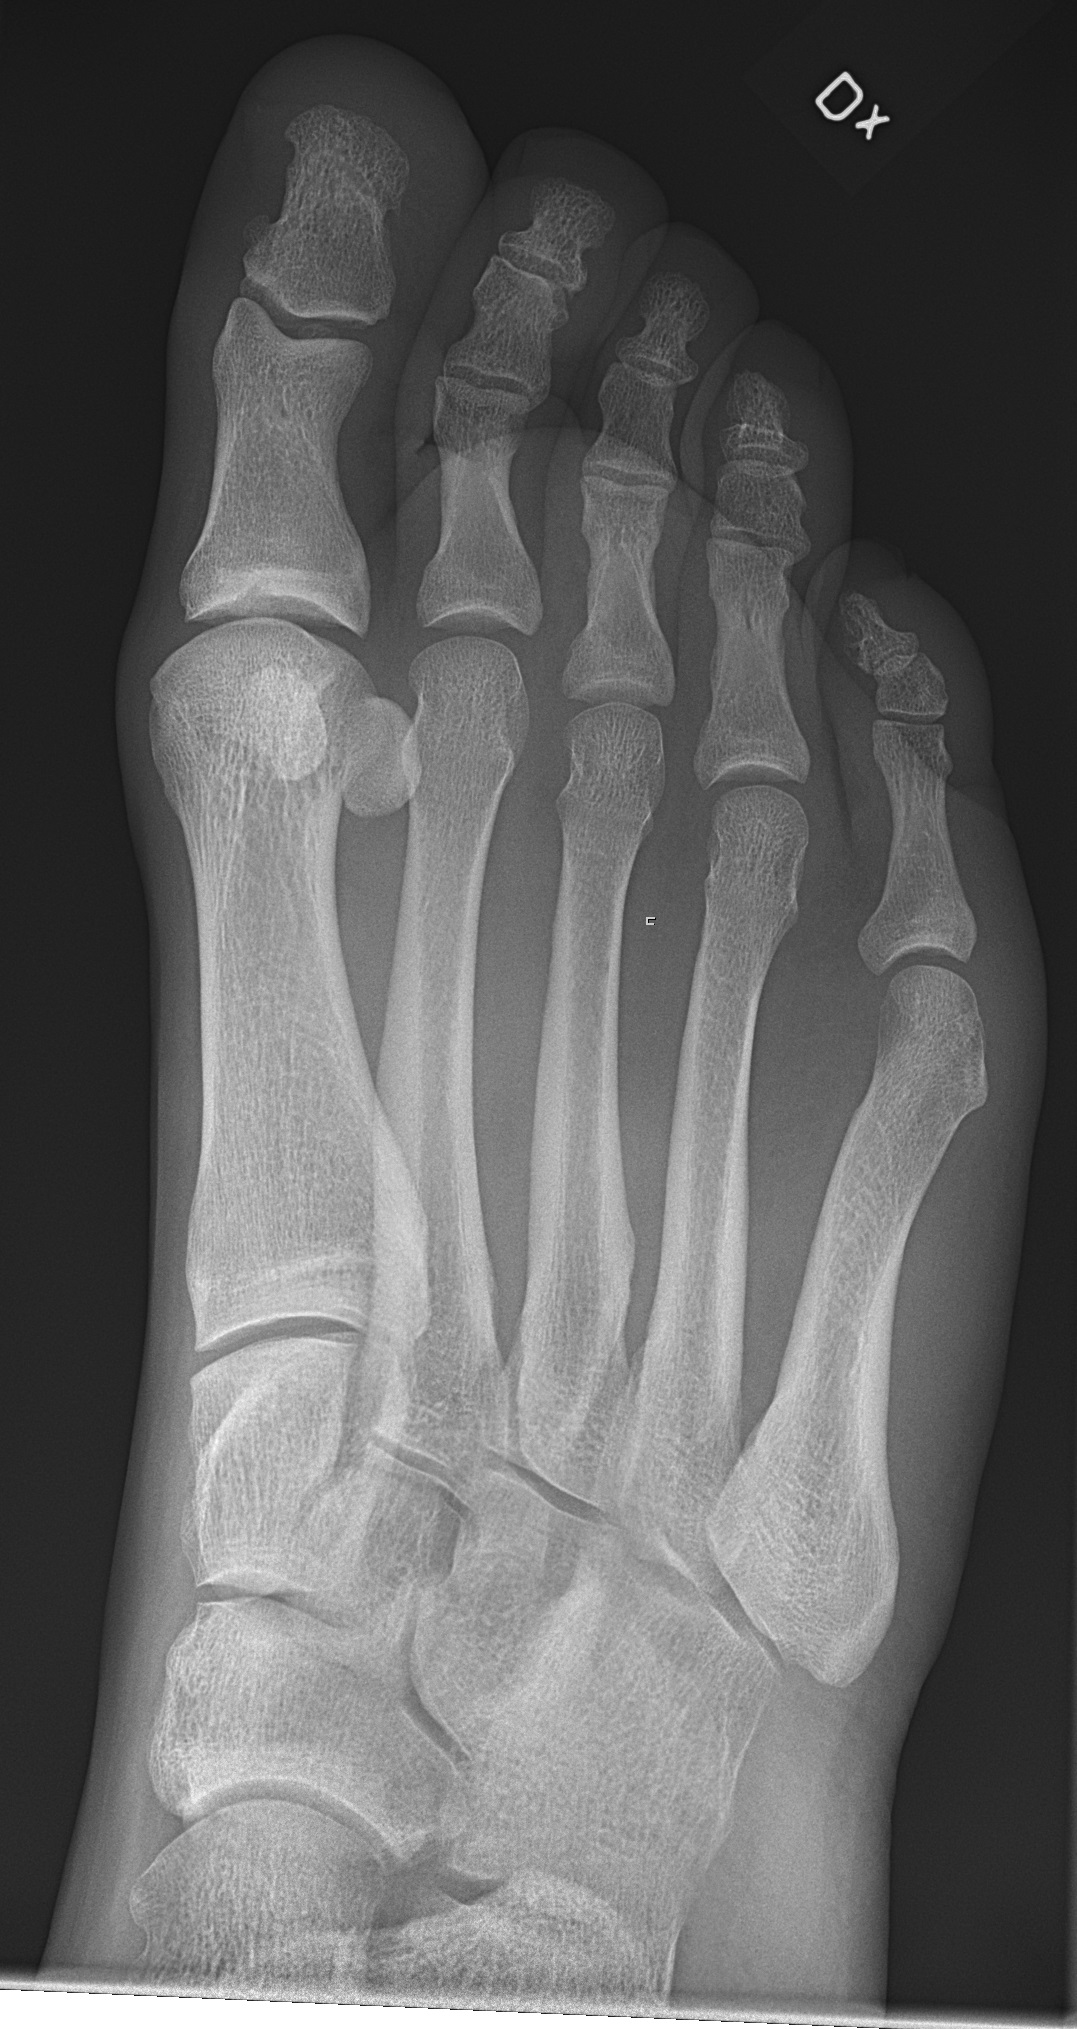 Filex Ray Of Normal Right Foot By Oblique Projectiong